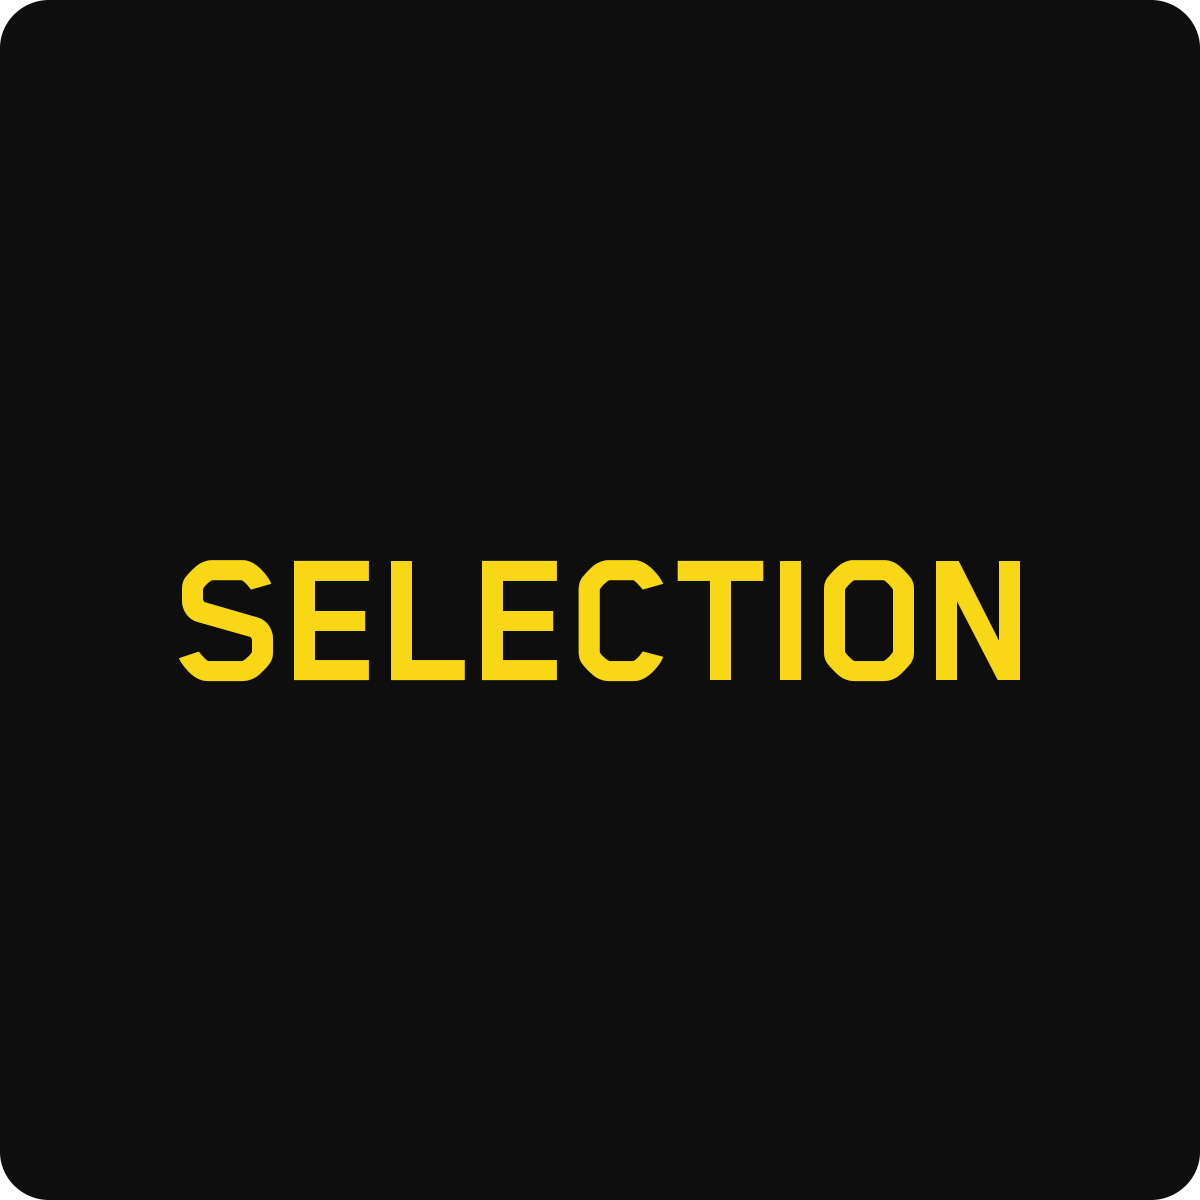 Selection package